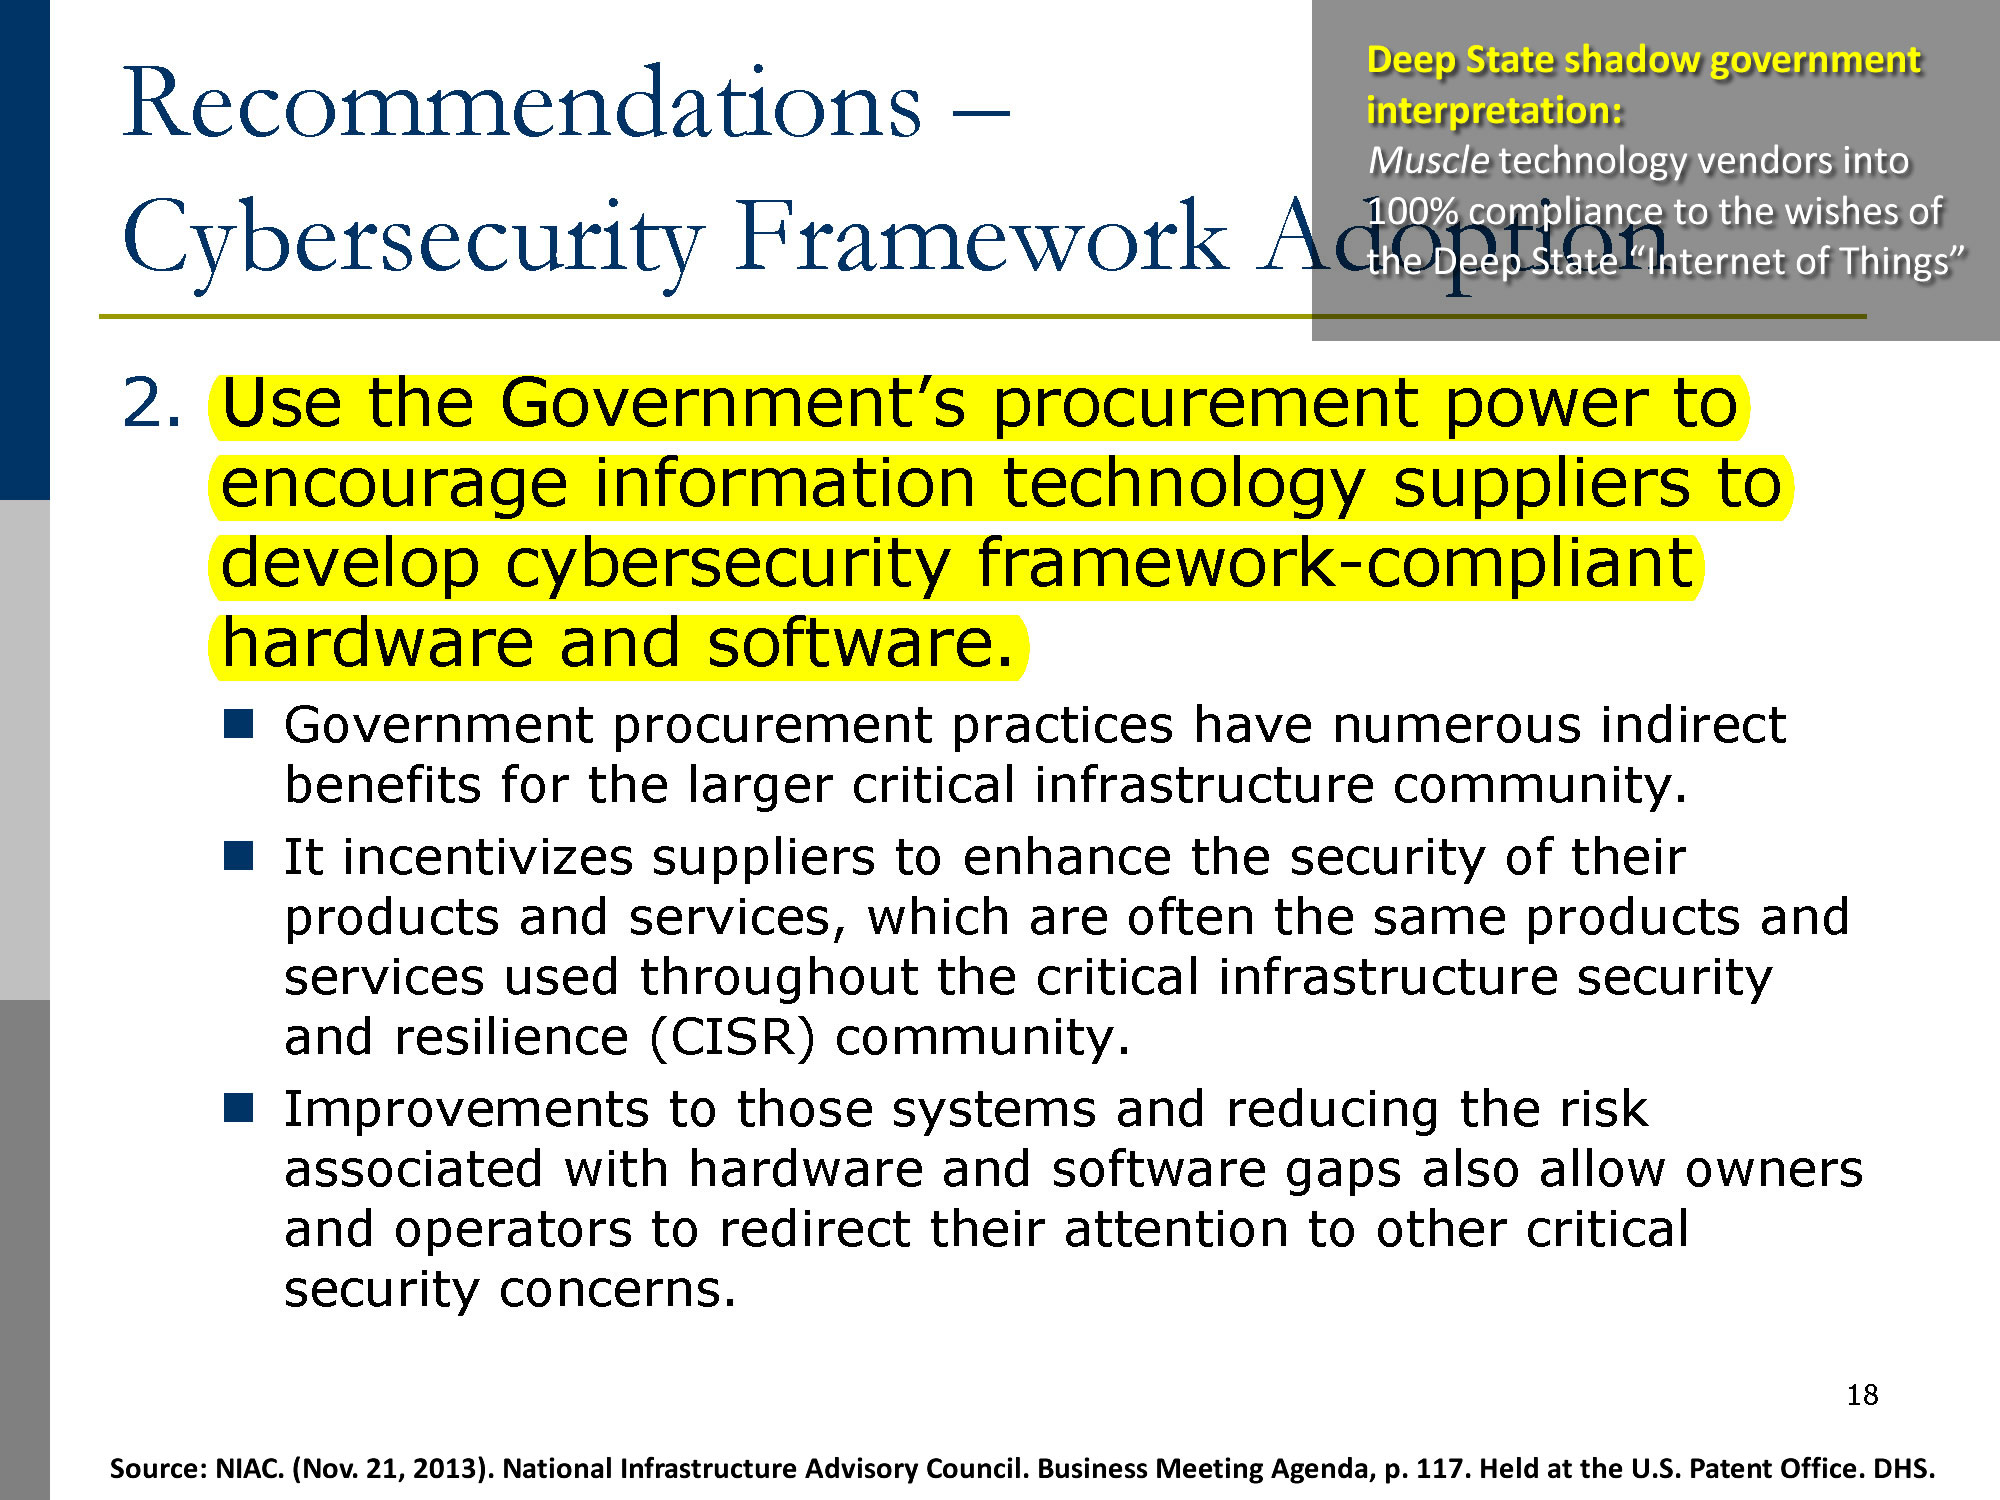 NIAC. (Nov. 21, 2013). National Infrastructure Advisory Council. Business Meeting Agenda, p. 117. Held at the U.S. Patent Office. DHS.